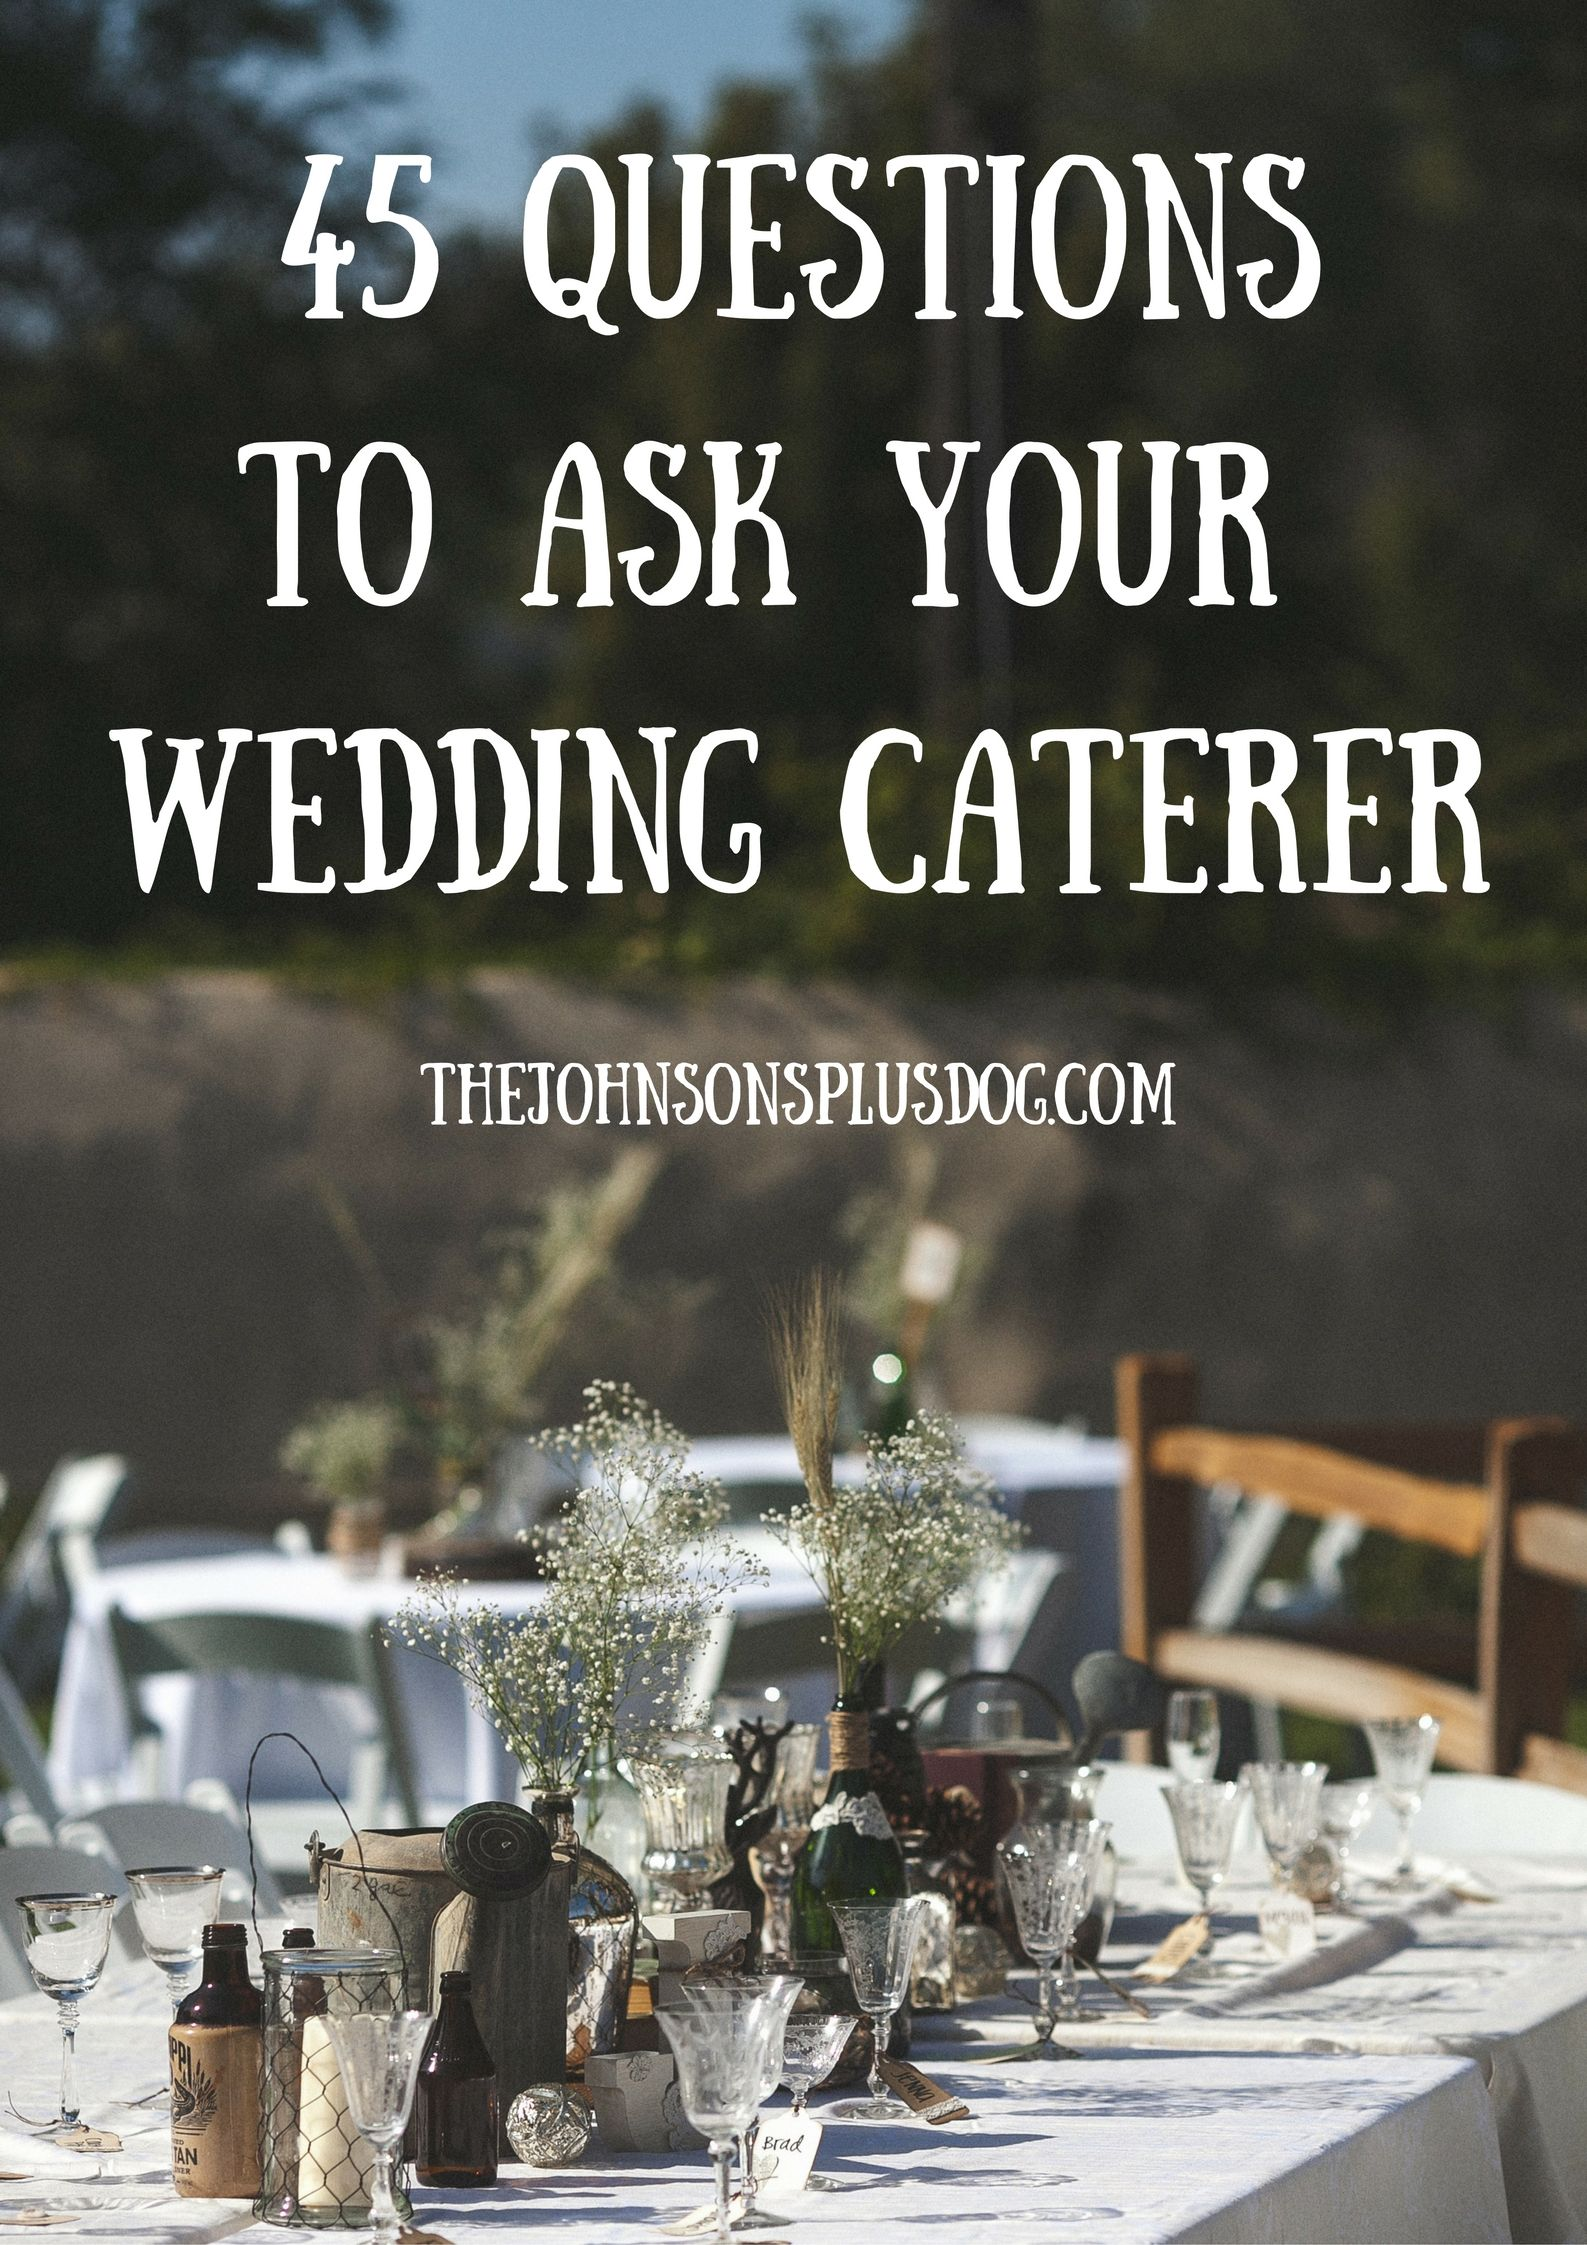 45 Questions To Ask Your Wedding Caterer What Planning Advice Choosing